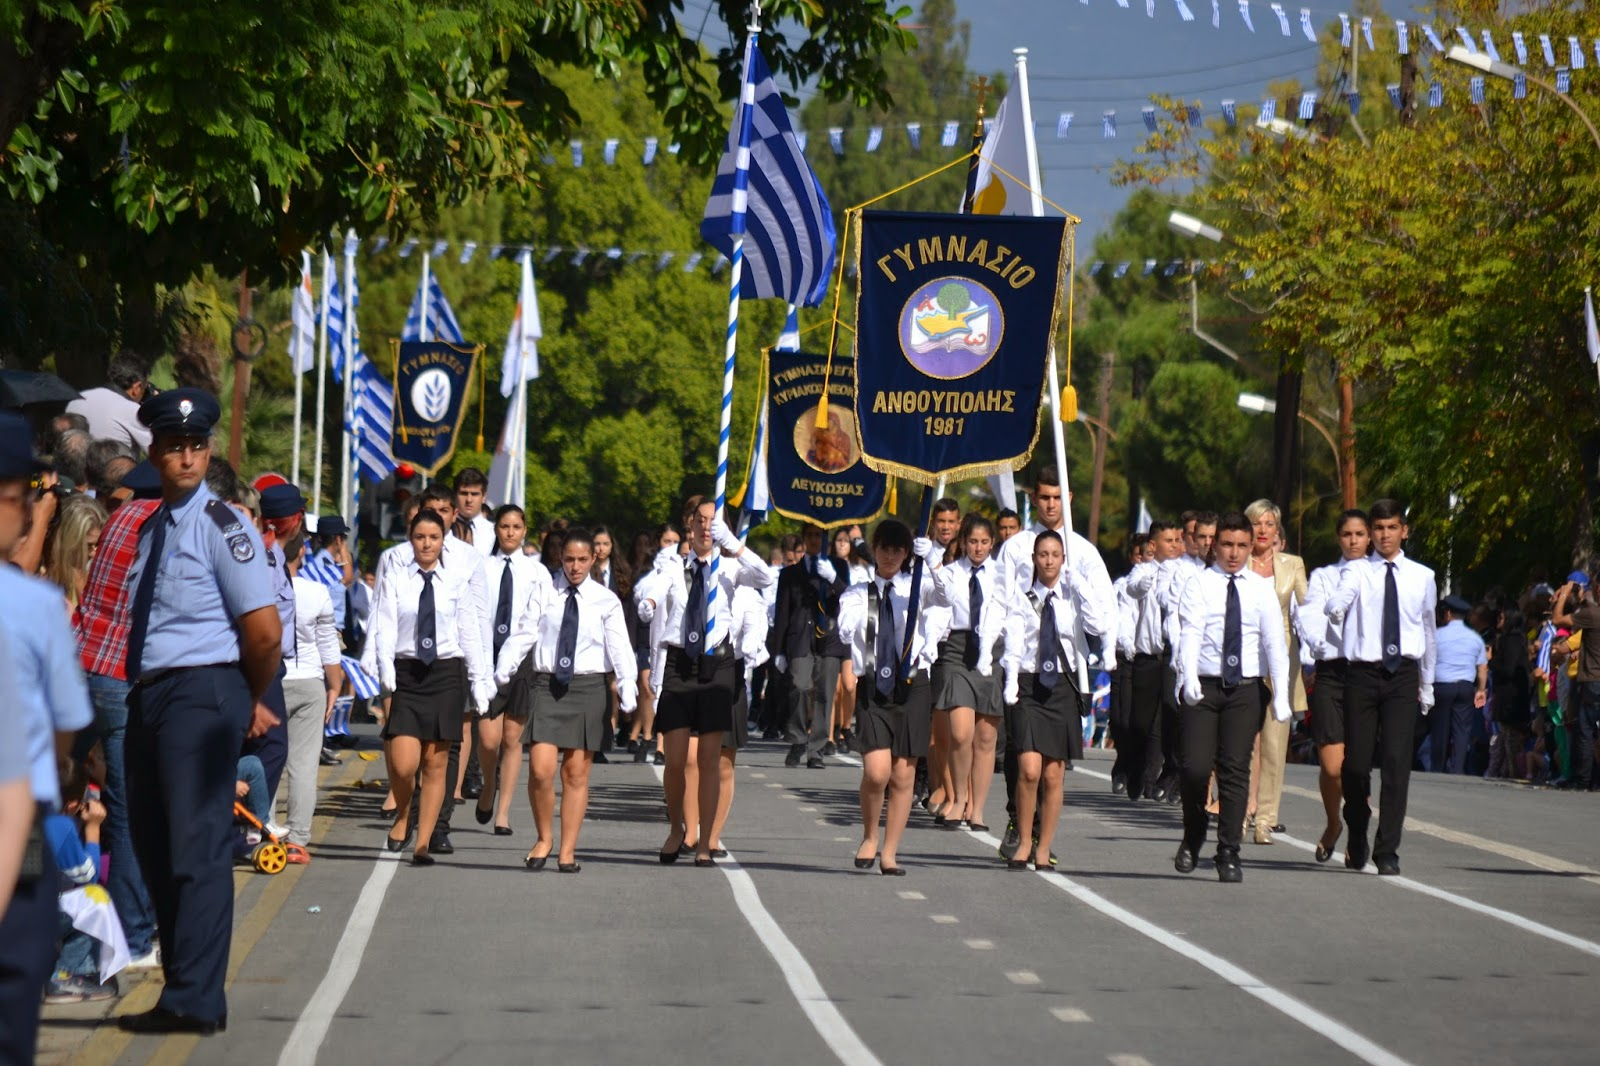 The anniversary of 'NO' celebrated with pomp in Cyprus